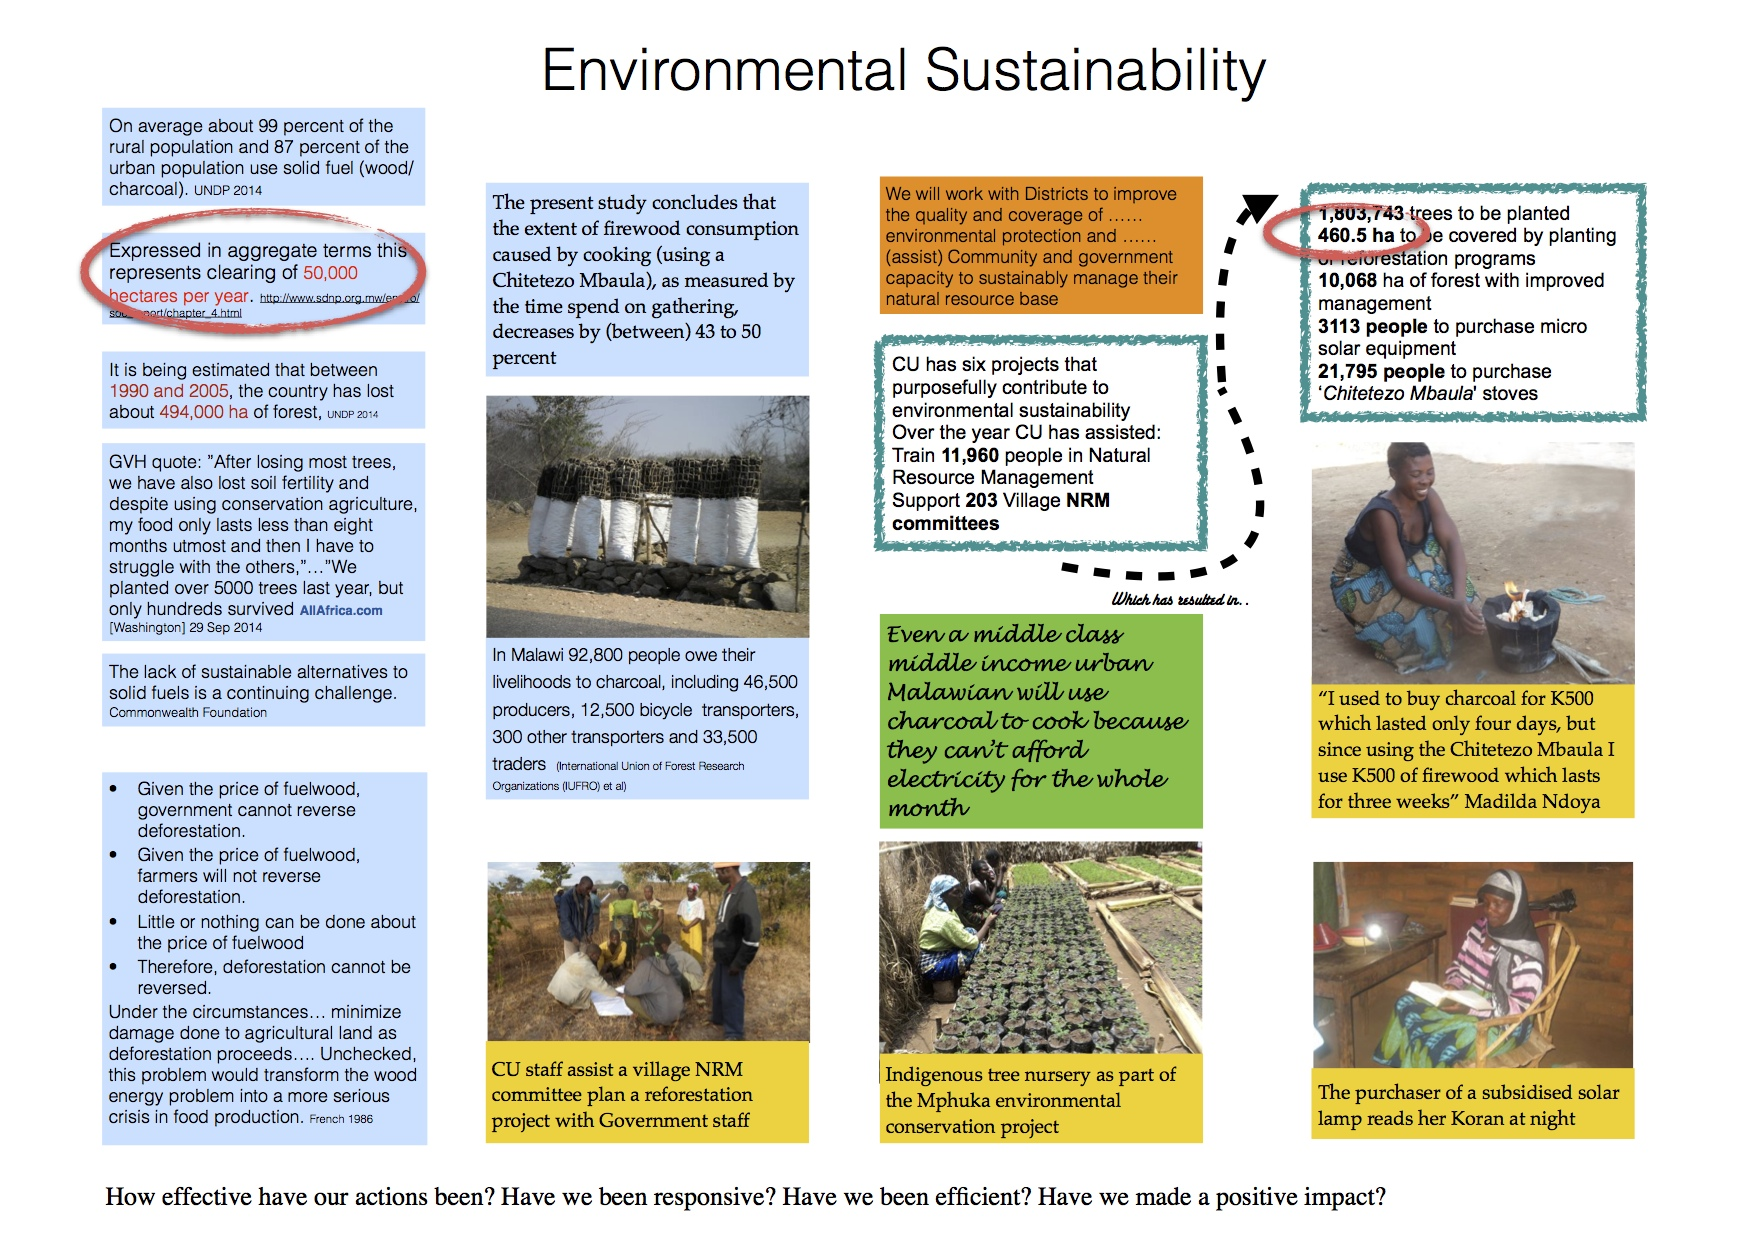 Staff comments on Environmental Sustainability activities: Reduction in tree cutting because of using solar lamps and CM stoves